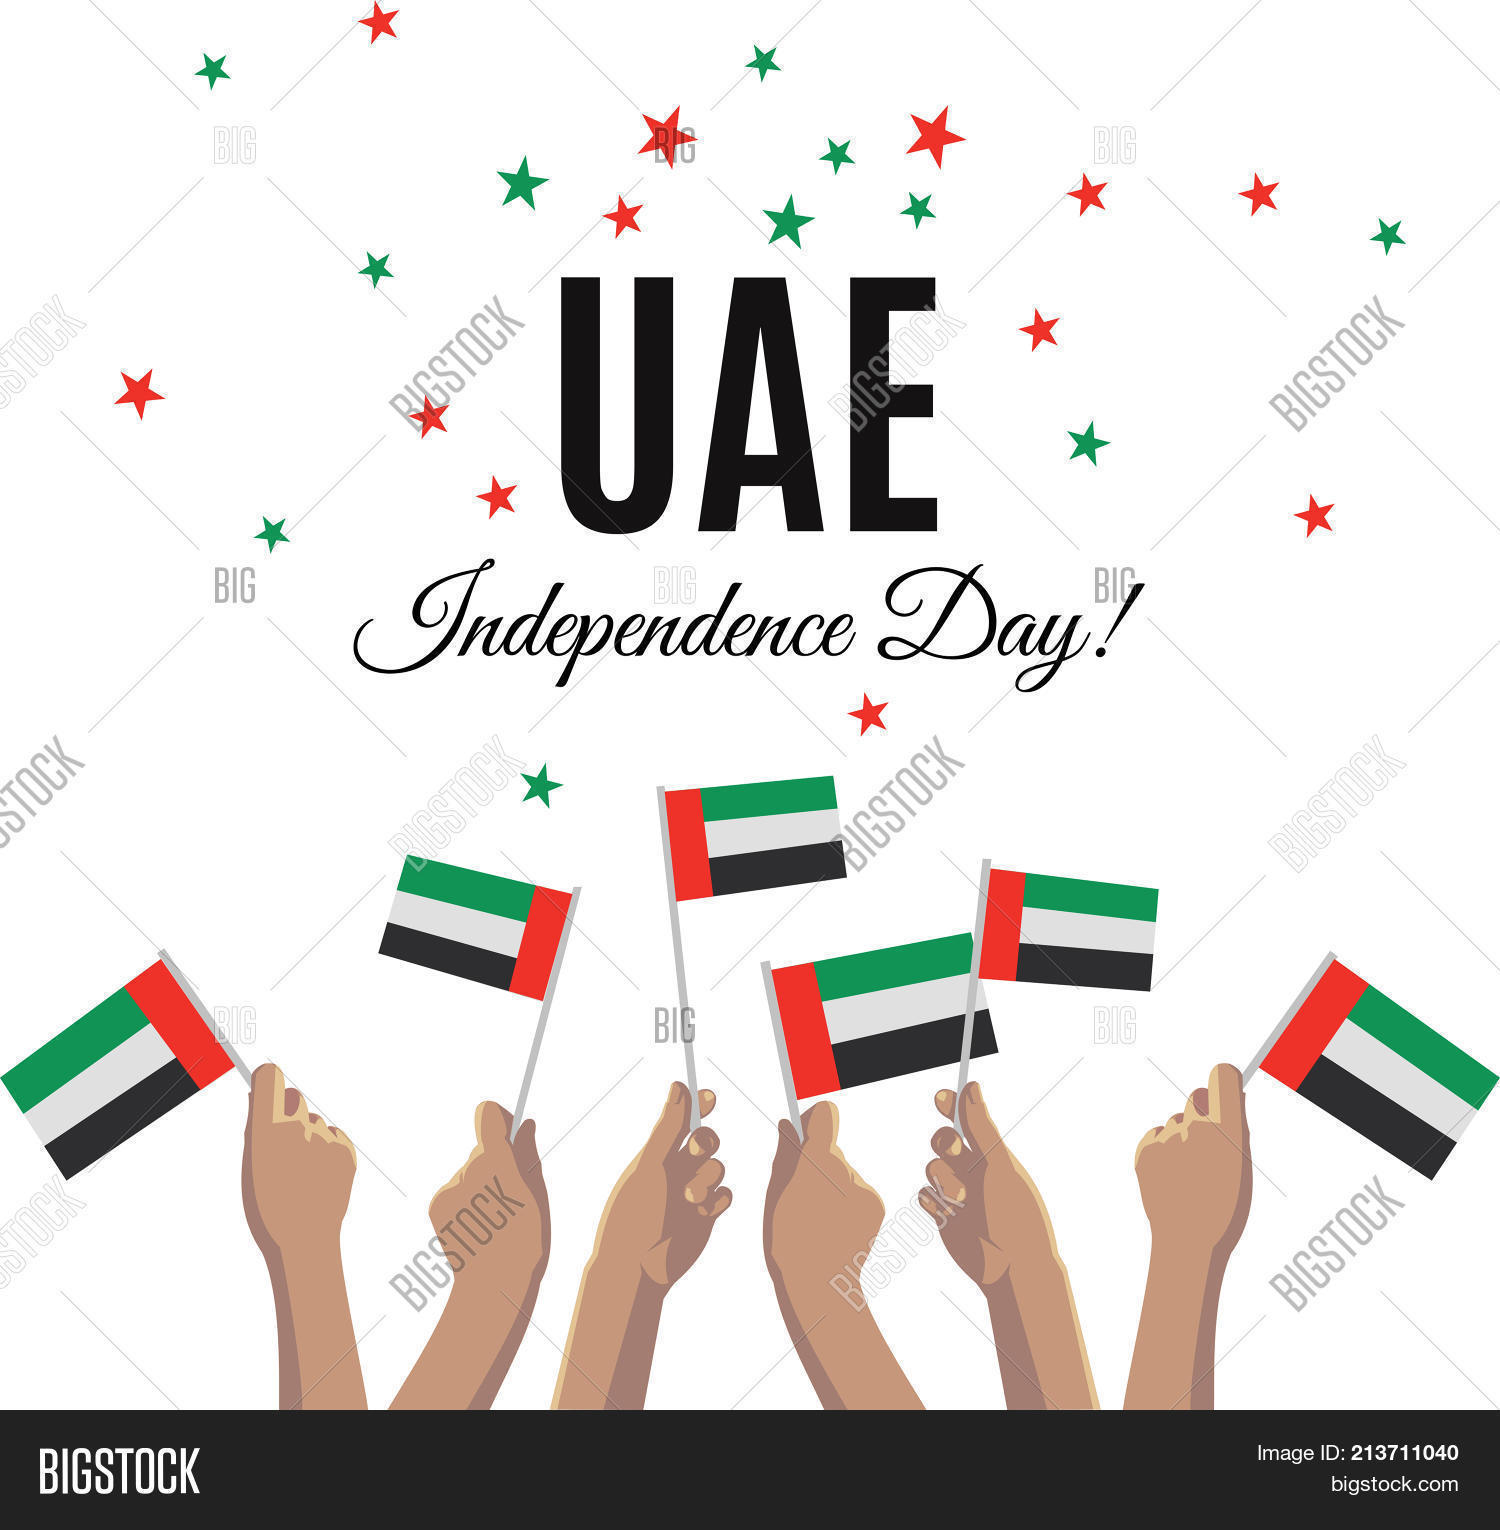 United arab emirates vector photo free trial bigstock united arab emirates independence day placard banner or greeting card vector illustration with uae m4hsunfo